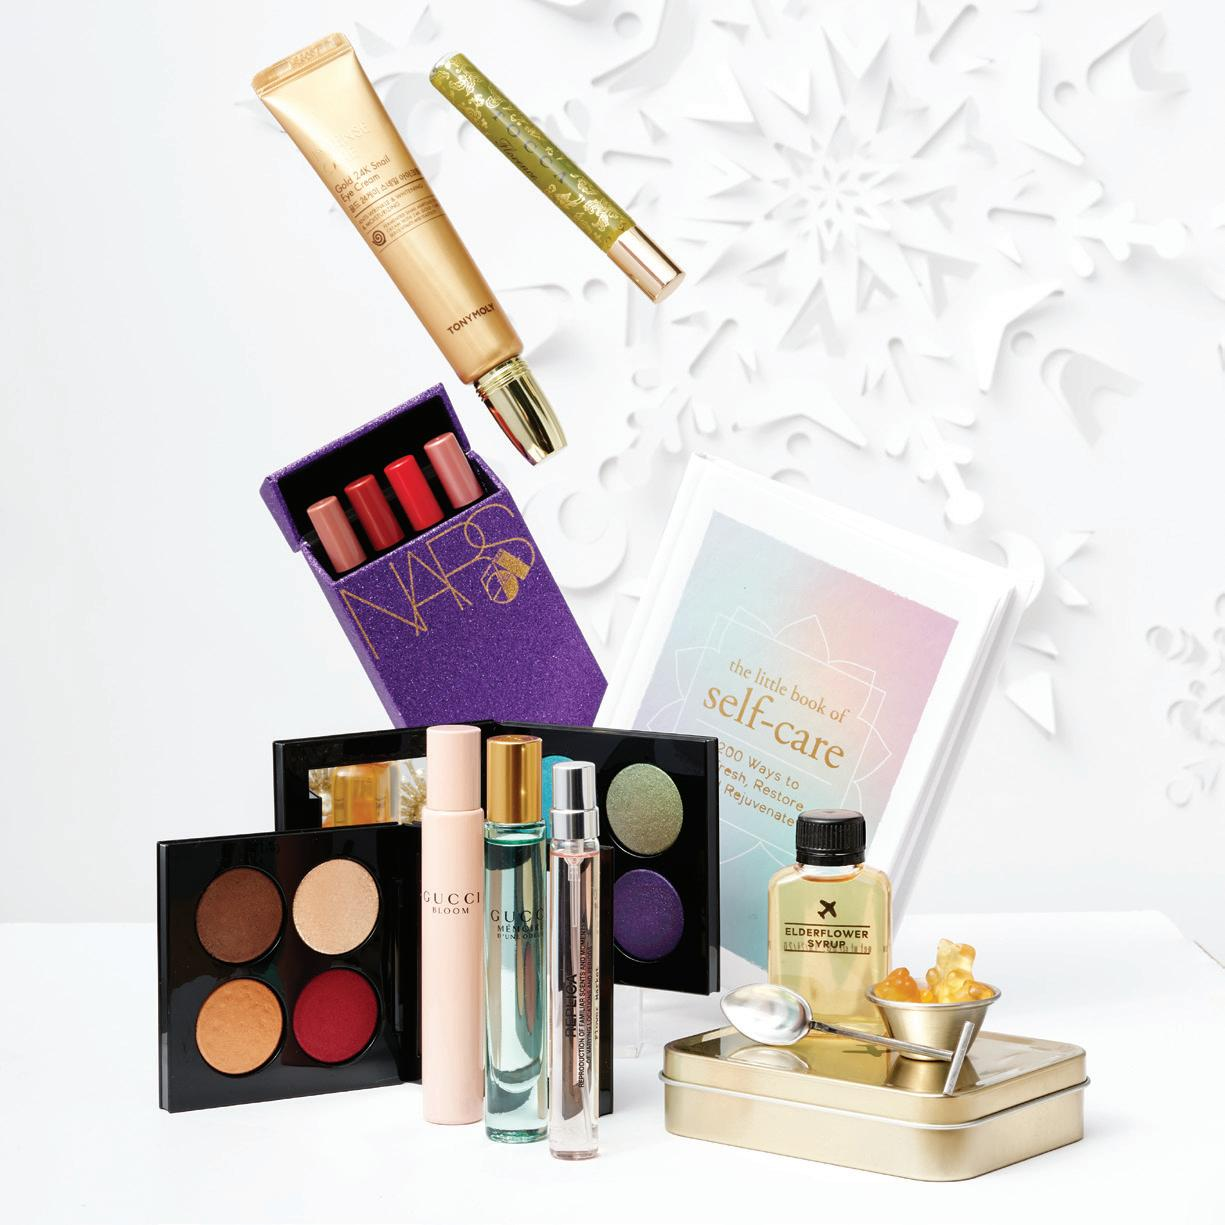 Shine 24K Gold Holiday Gift Box limited release